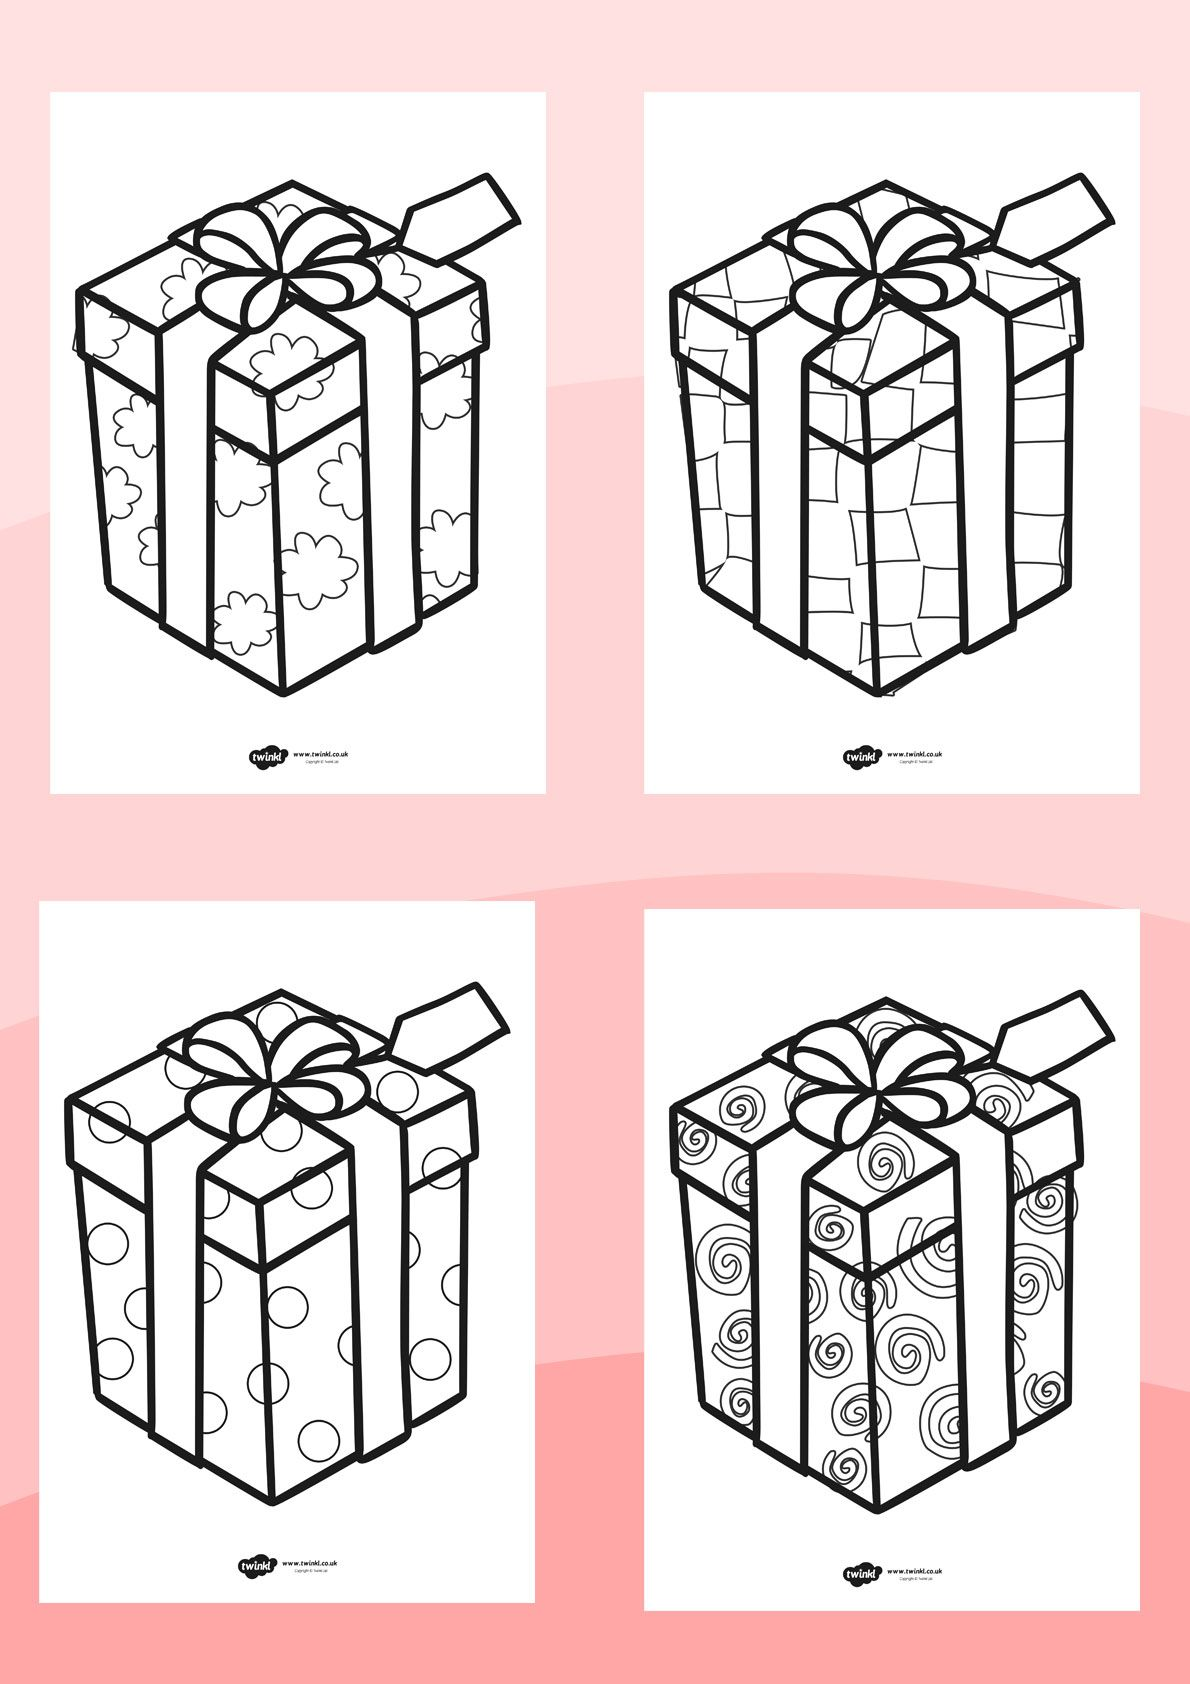 twinkl resources patterned presents colouring sheets printable resources for primary eyfs